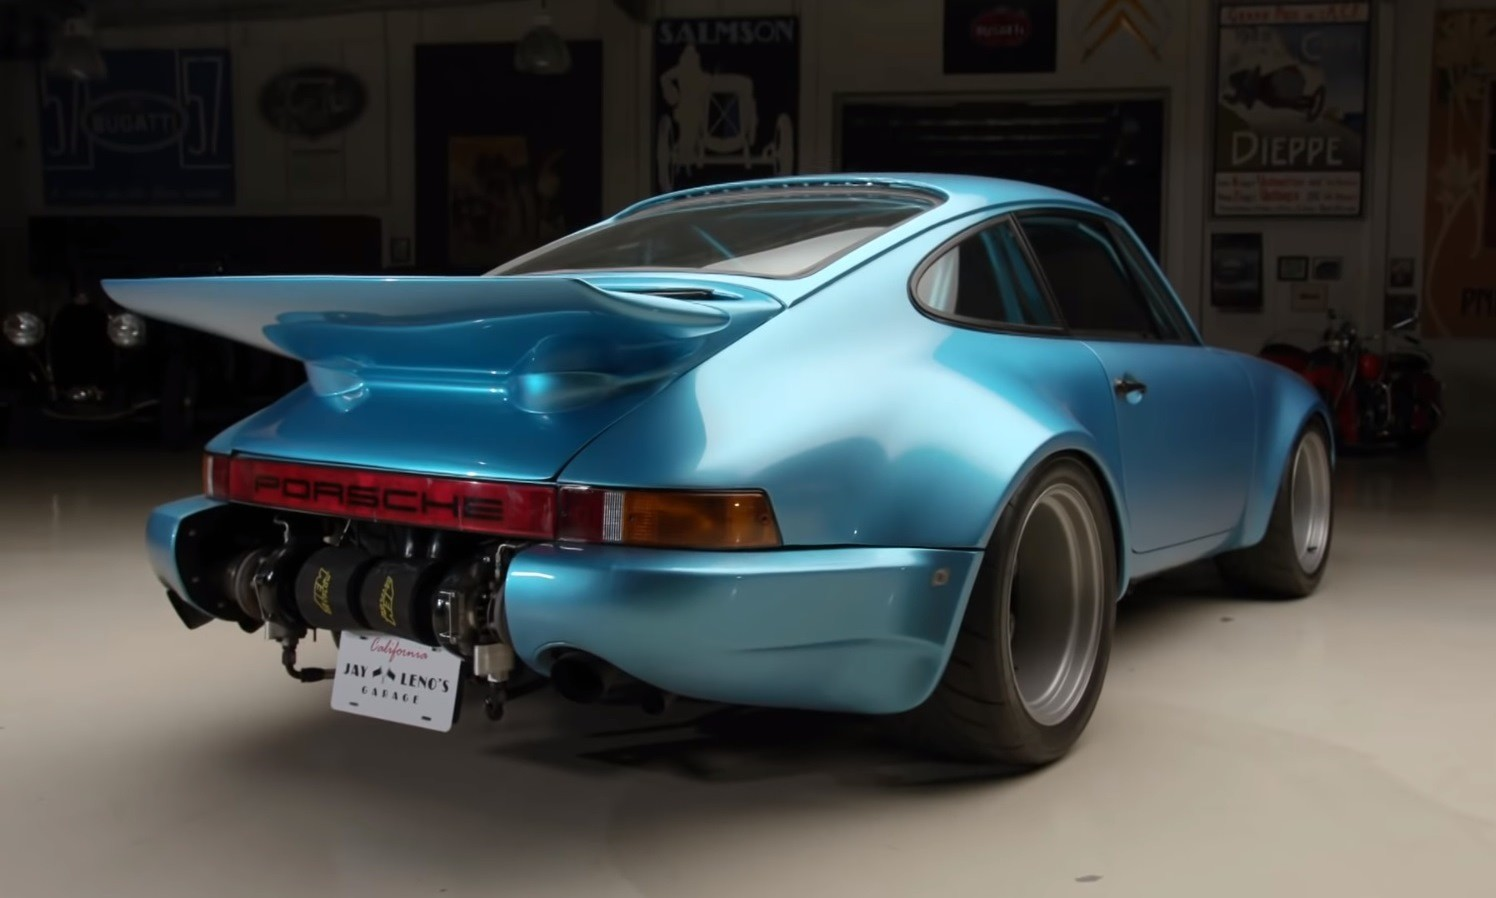 Bisimoto Porsche 911 rear side